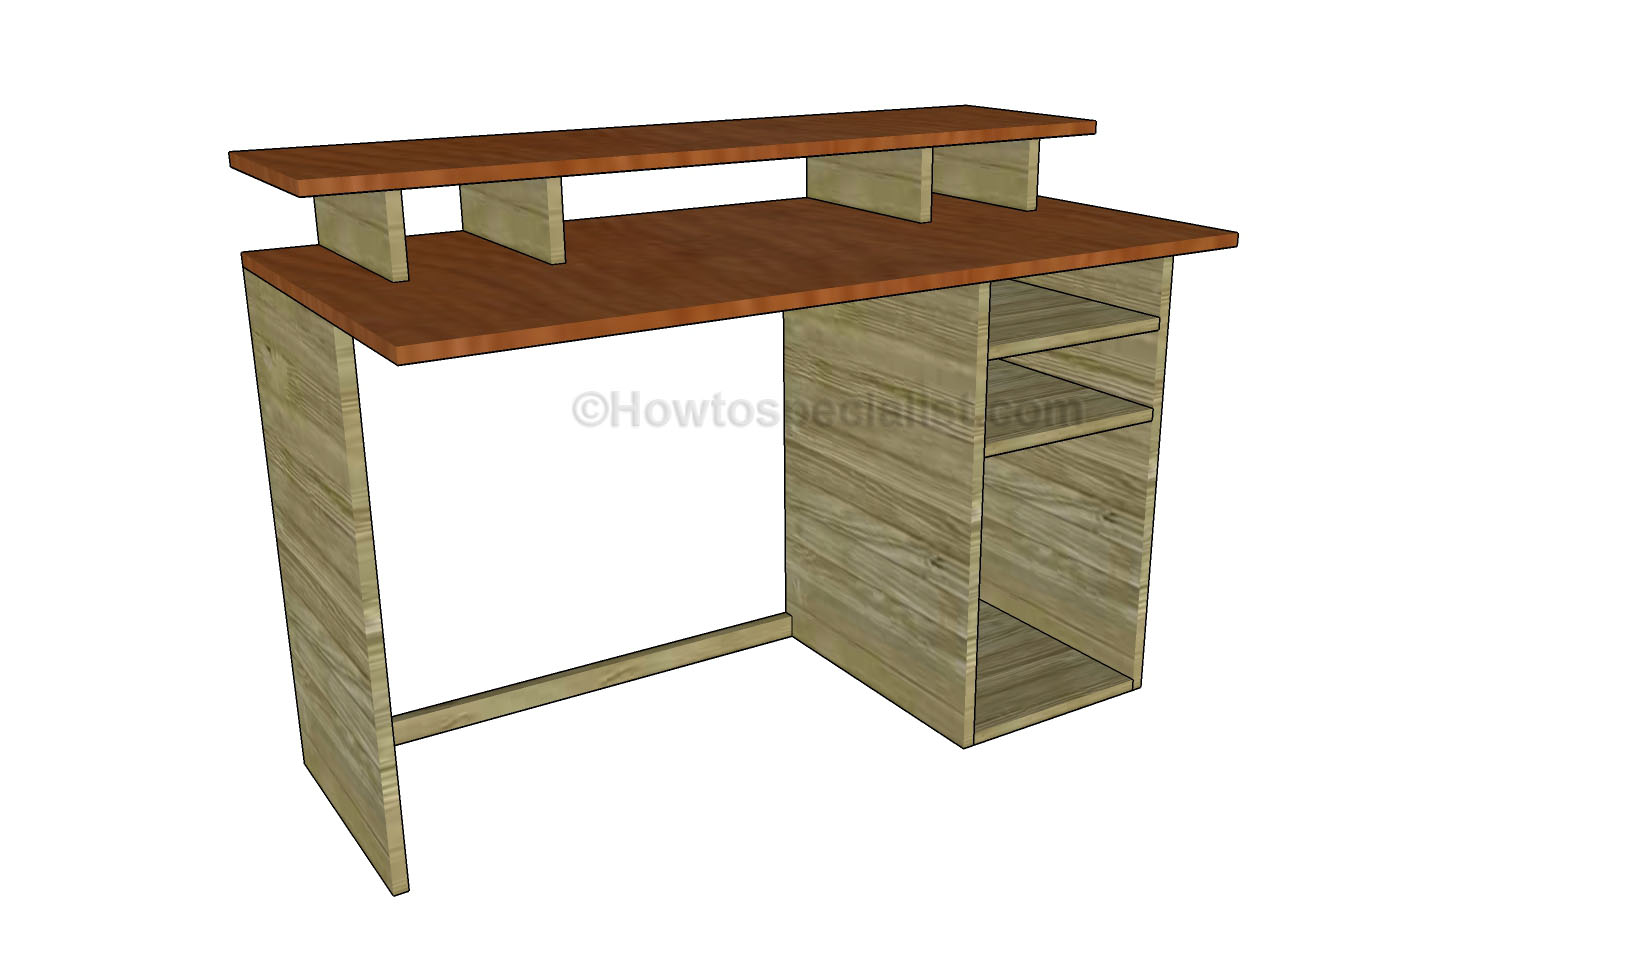 Permalink to free corner desk woodworking plans